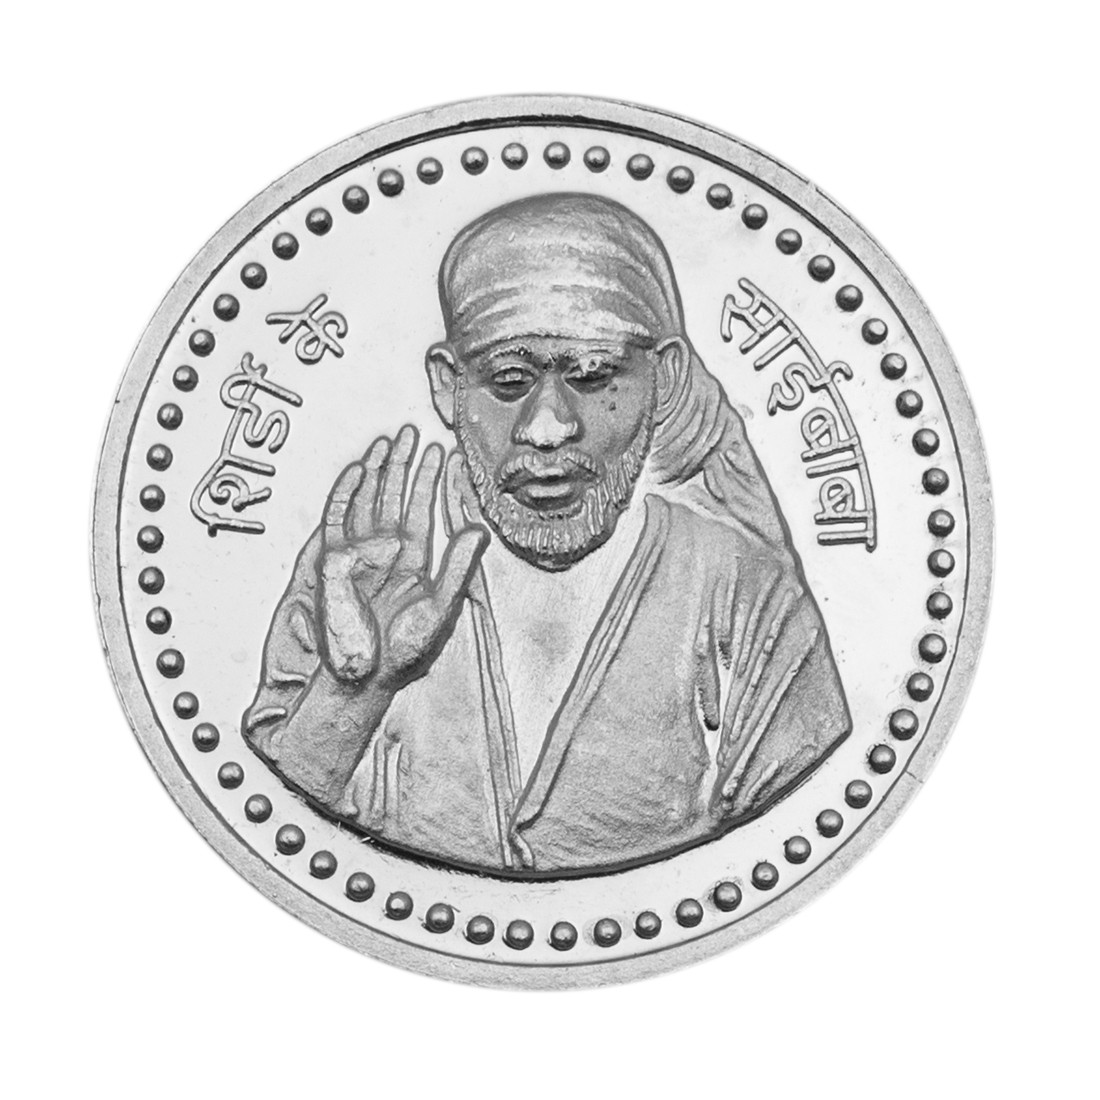 Buy Sai Baba Silver Coin Of 5 Gram In 999 Purity